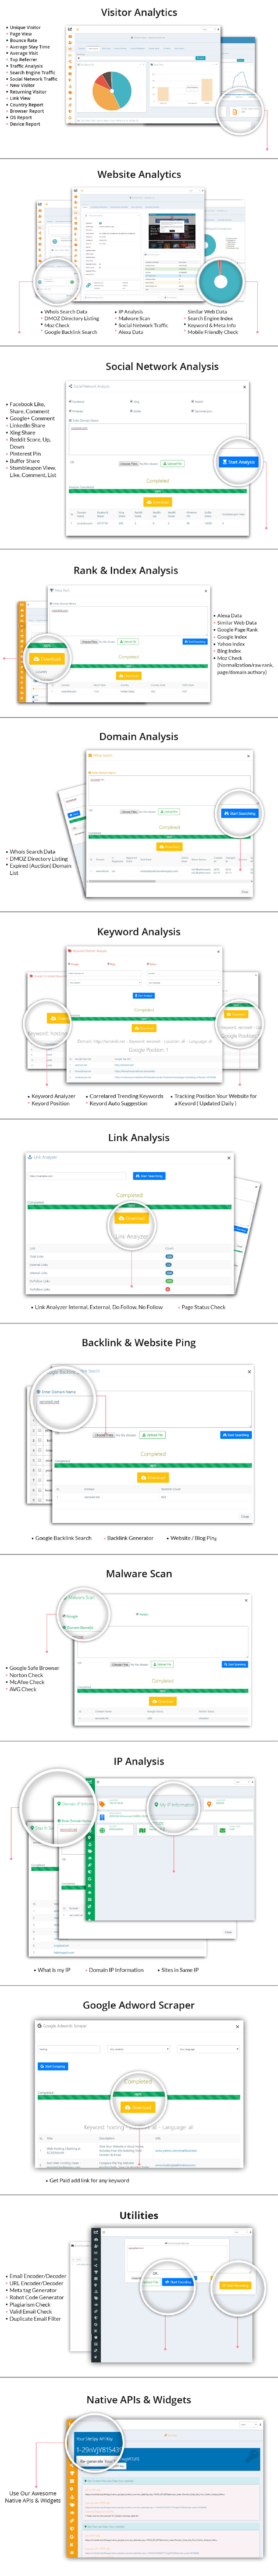 SiteSpy - The Most Complete Visitor Analytics & SEO Tools - 6